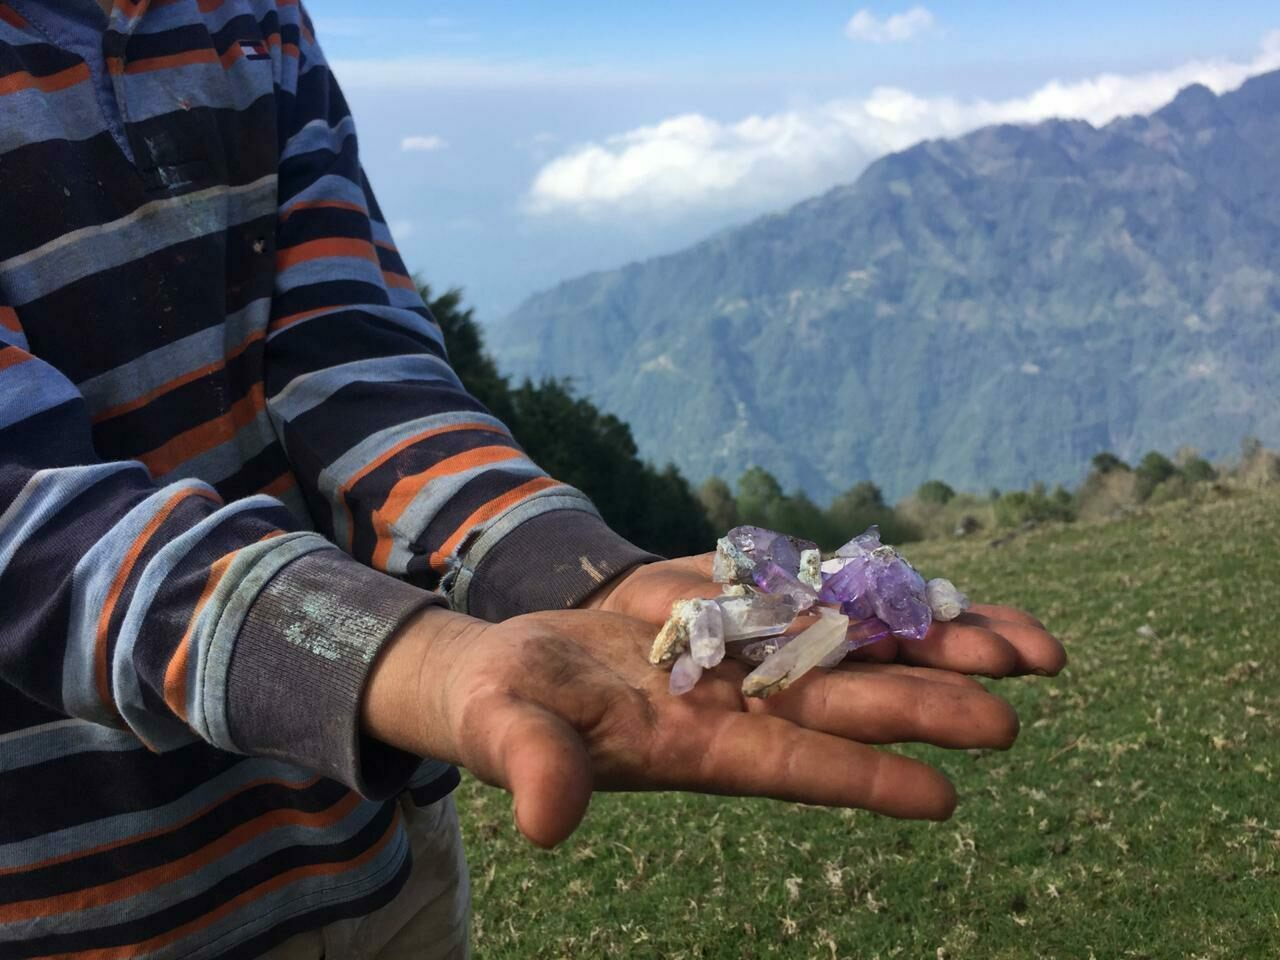 Many people in Piedra Parada mine amethysts for sale to visitors and dealers.